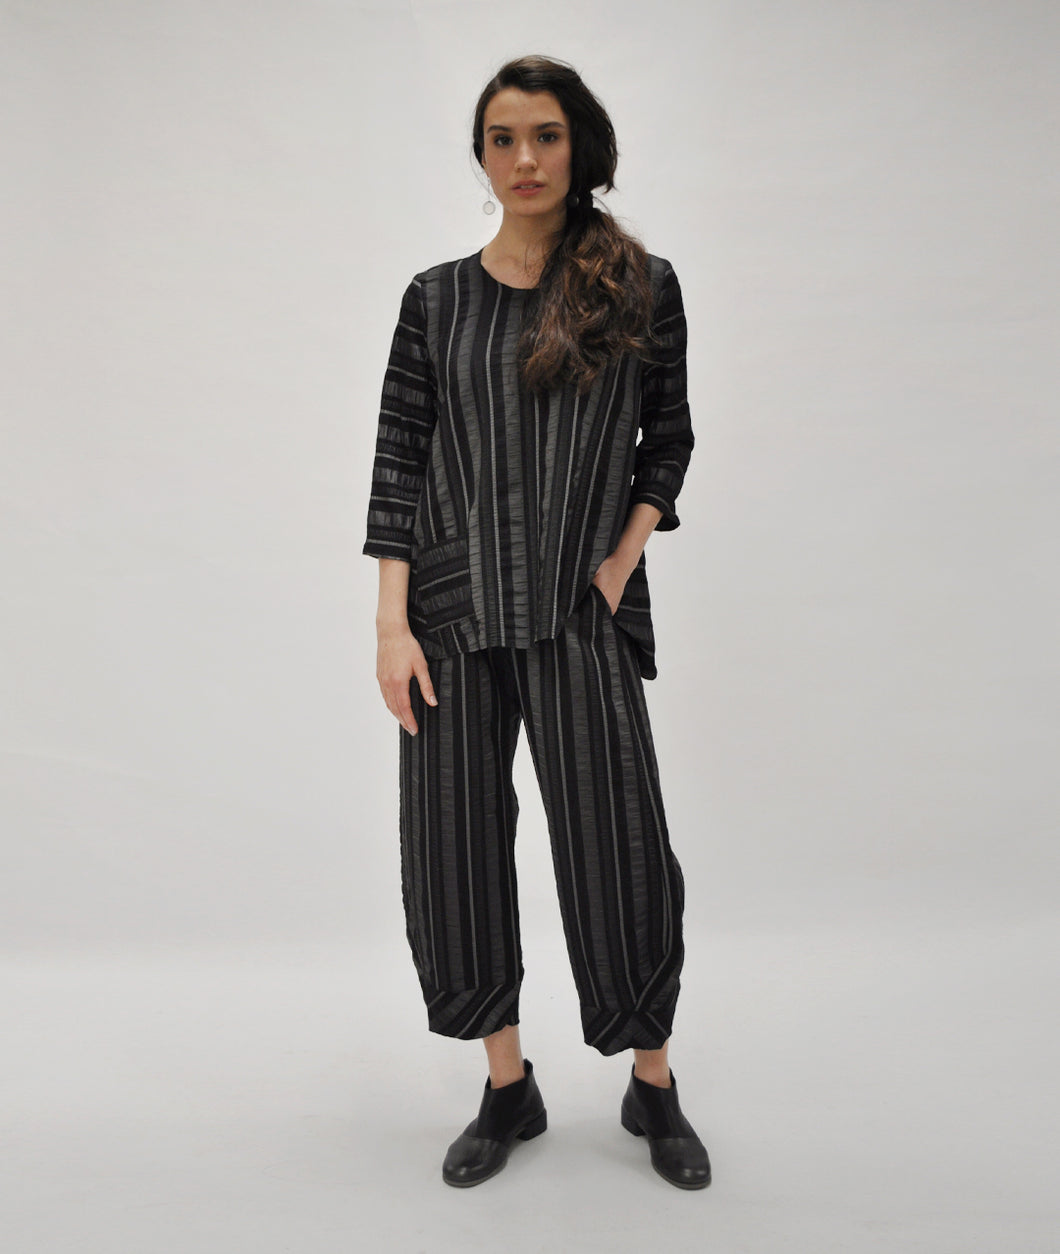 model in a black and silver striped pant with a matching top with a wide body and single pocket at the hip